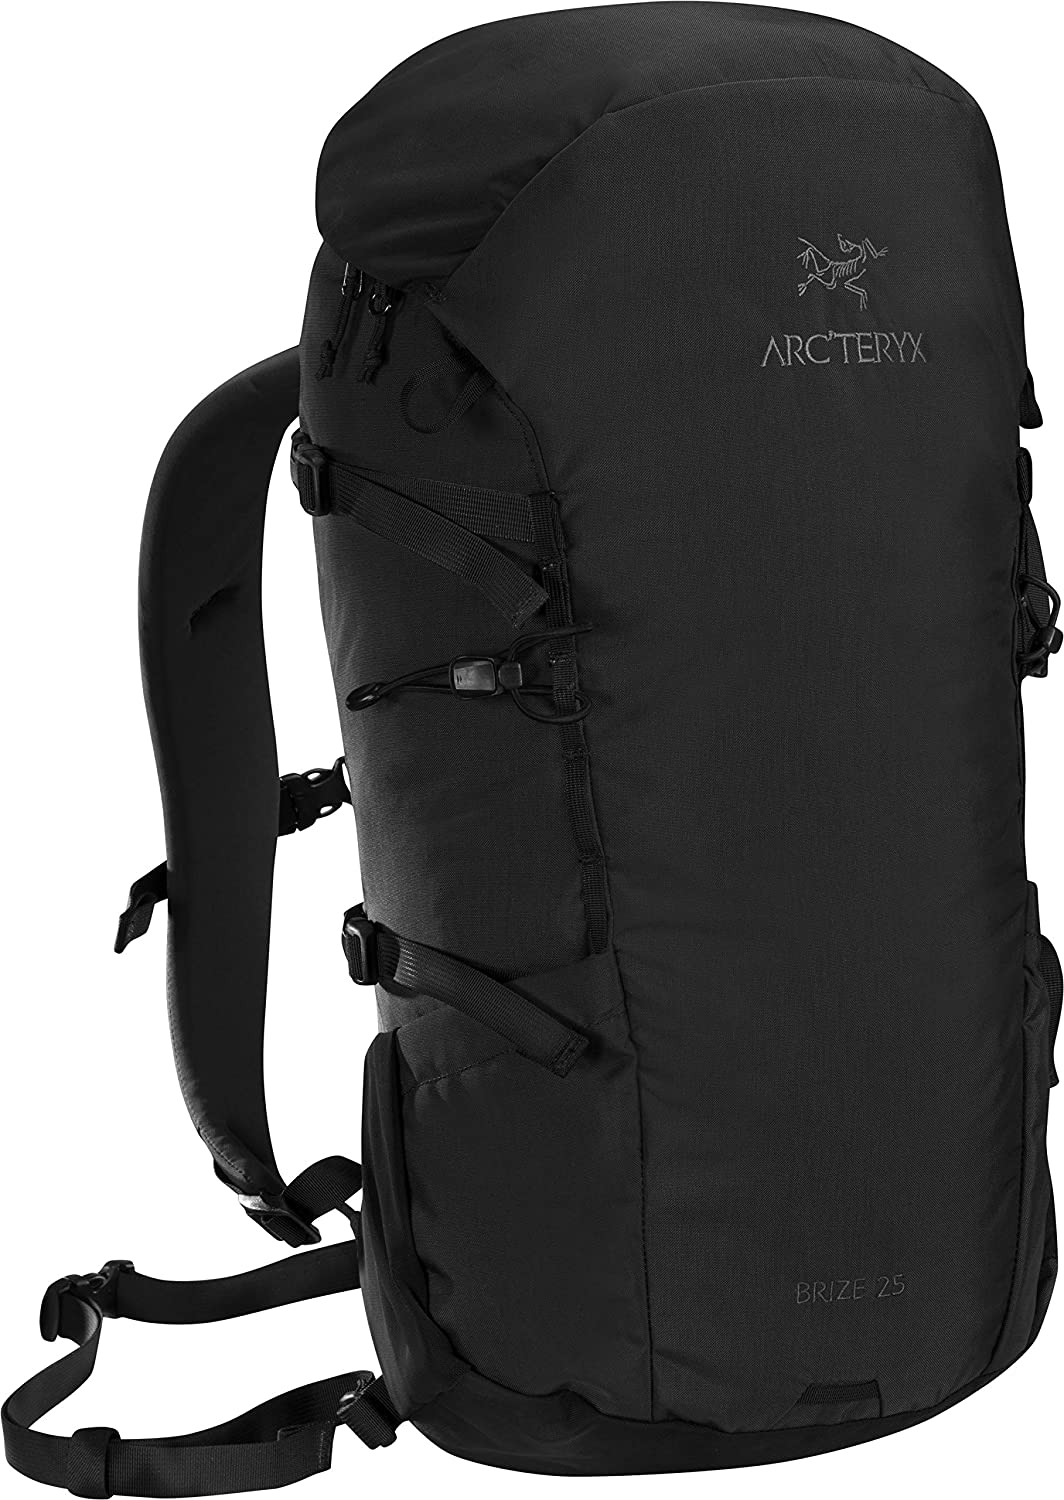 Arc teryx Brize 25 Backpack